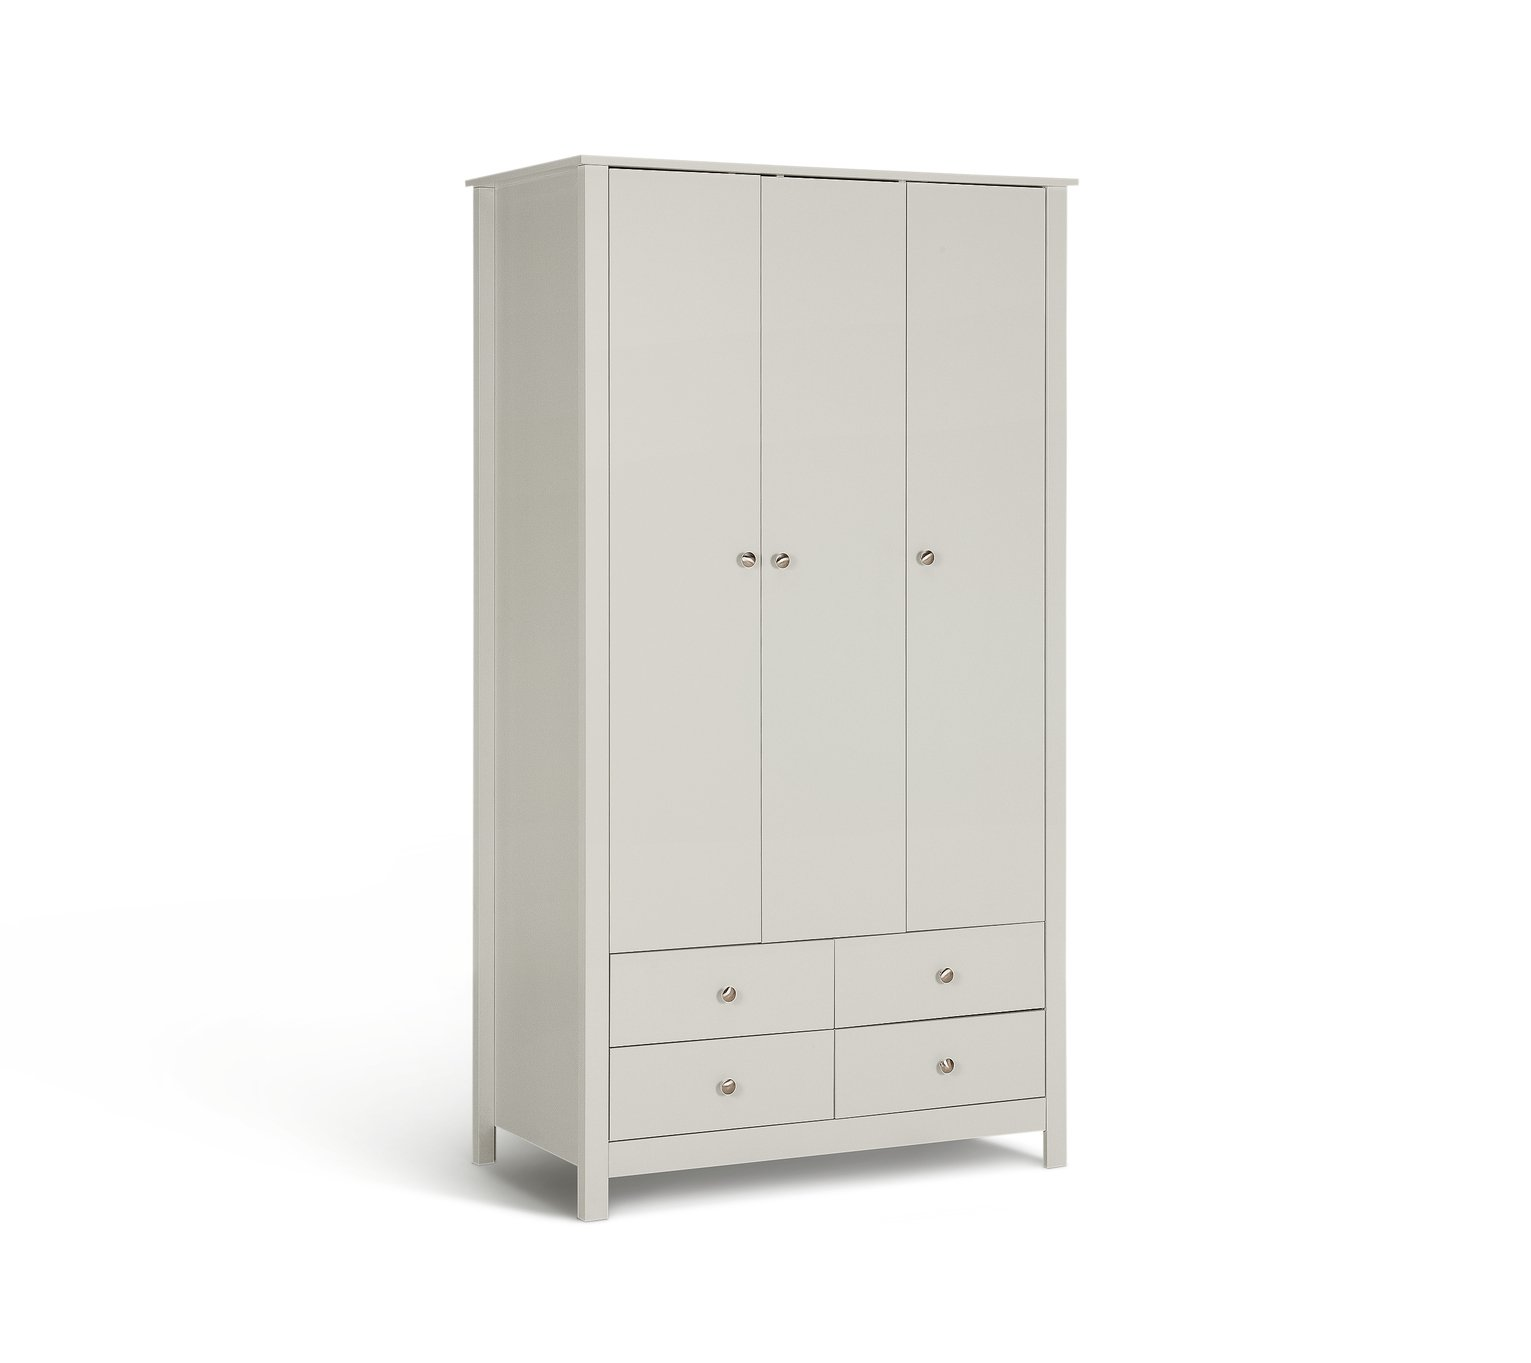 Argos Home Osaka 3 Door 4 Drawer Wardrobe